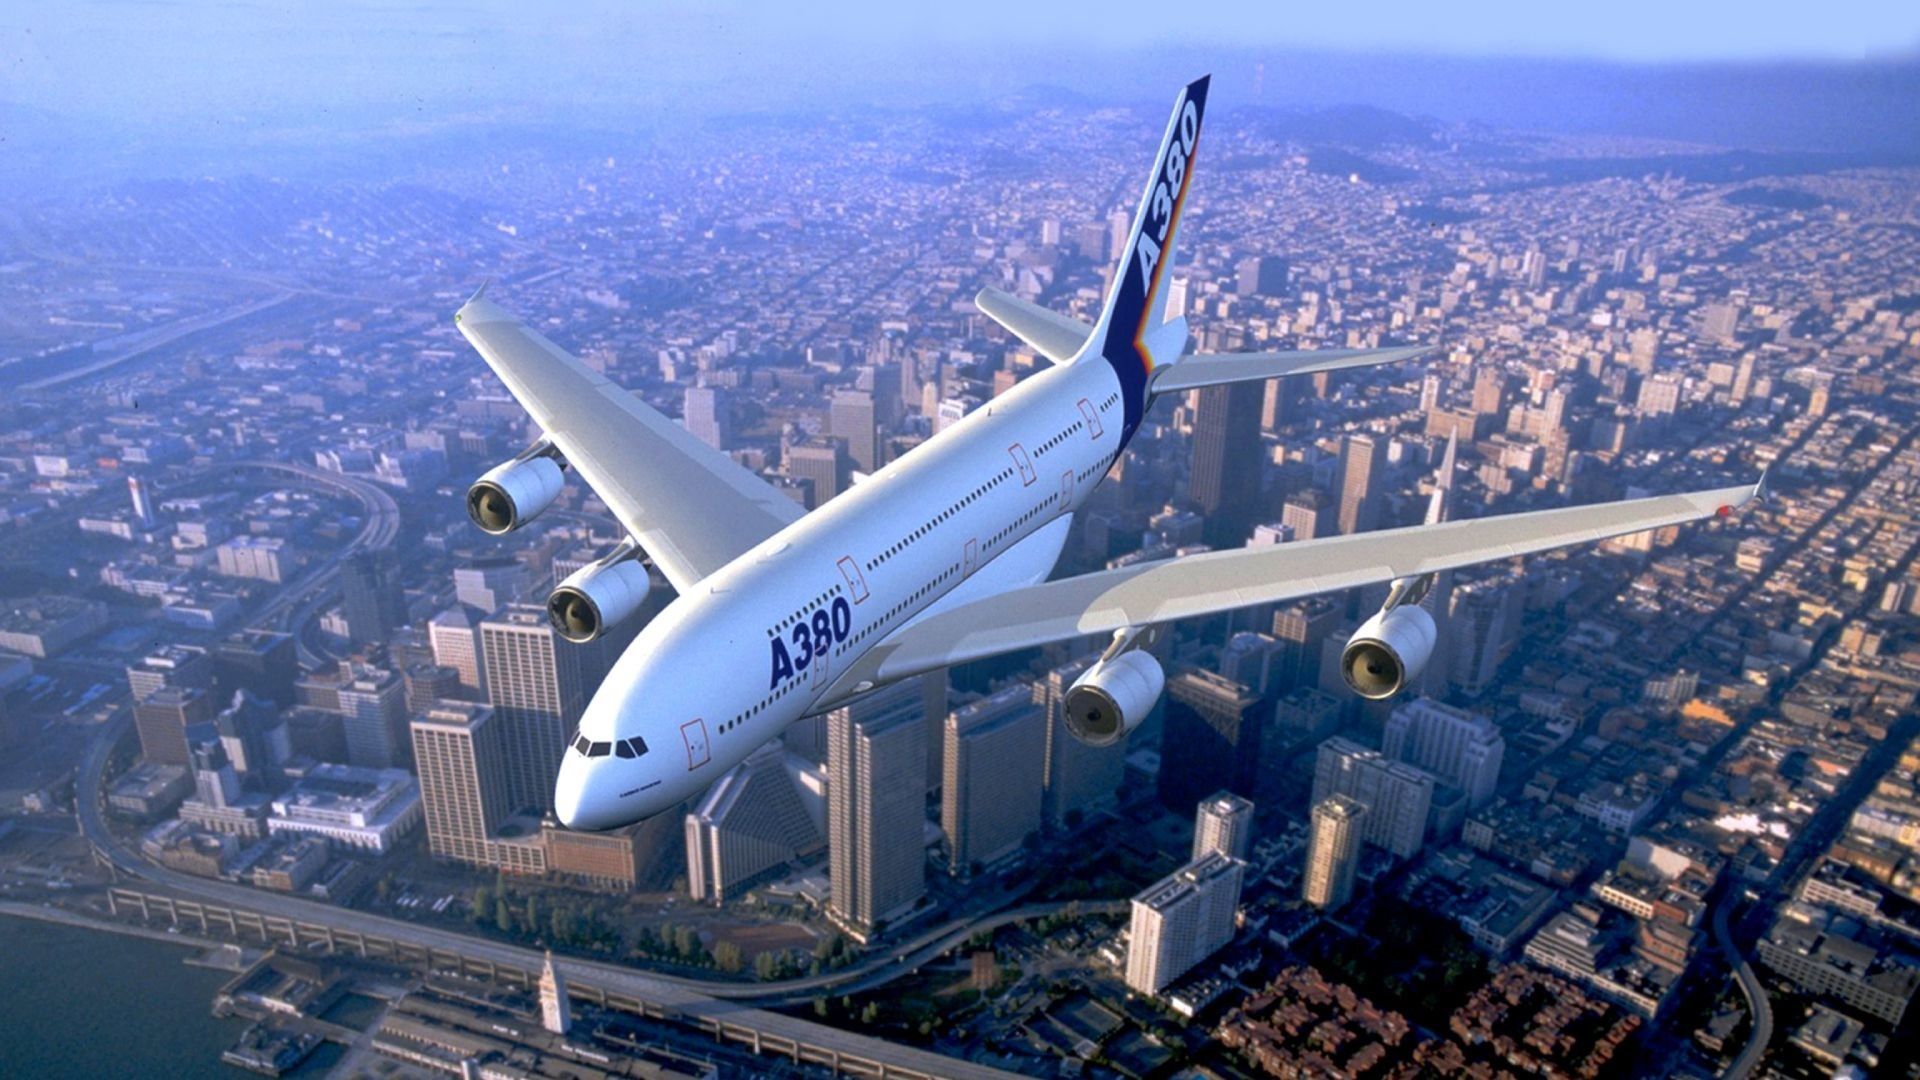 1920x1080 Airbus A380 Wallpaper For Desktop 1920X1080 Full Hd